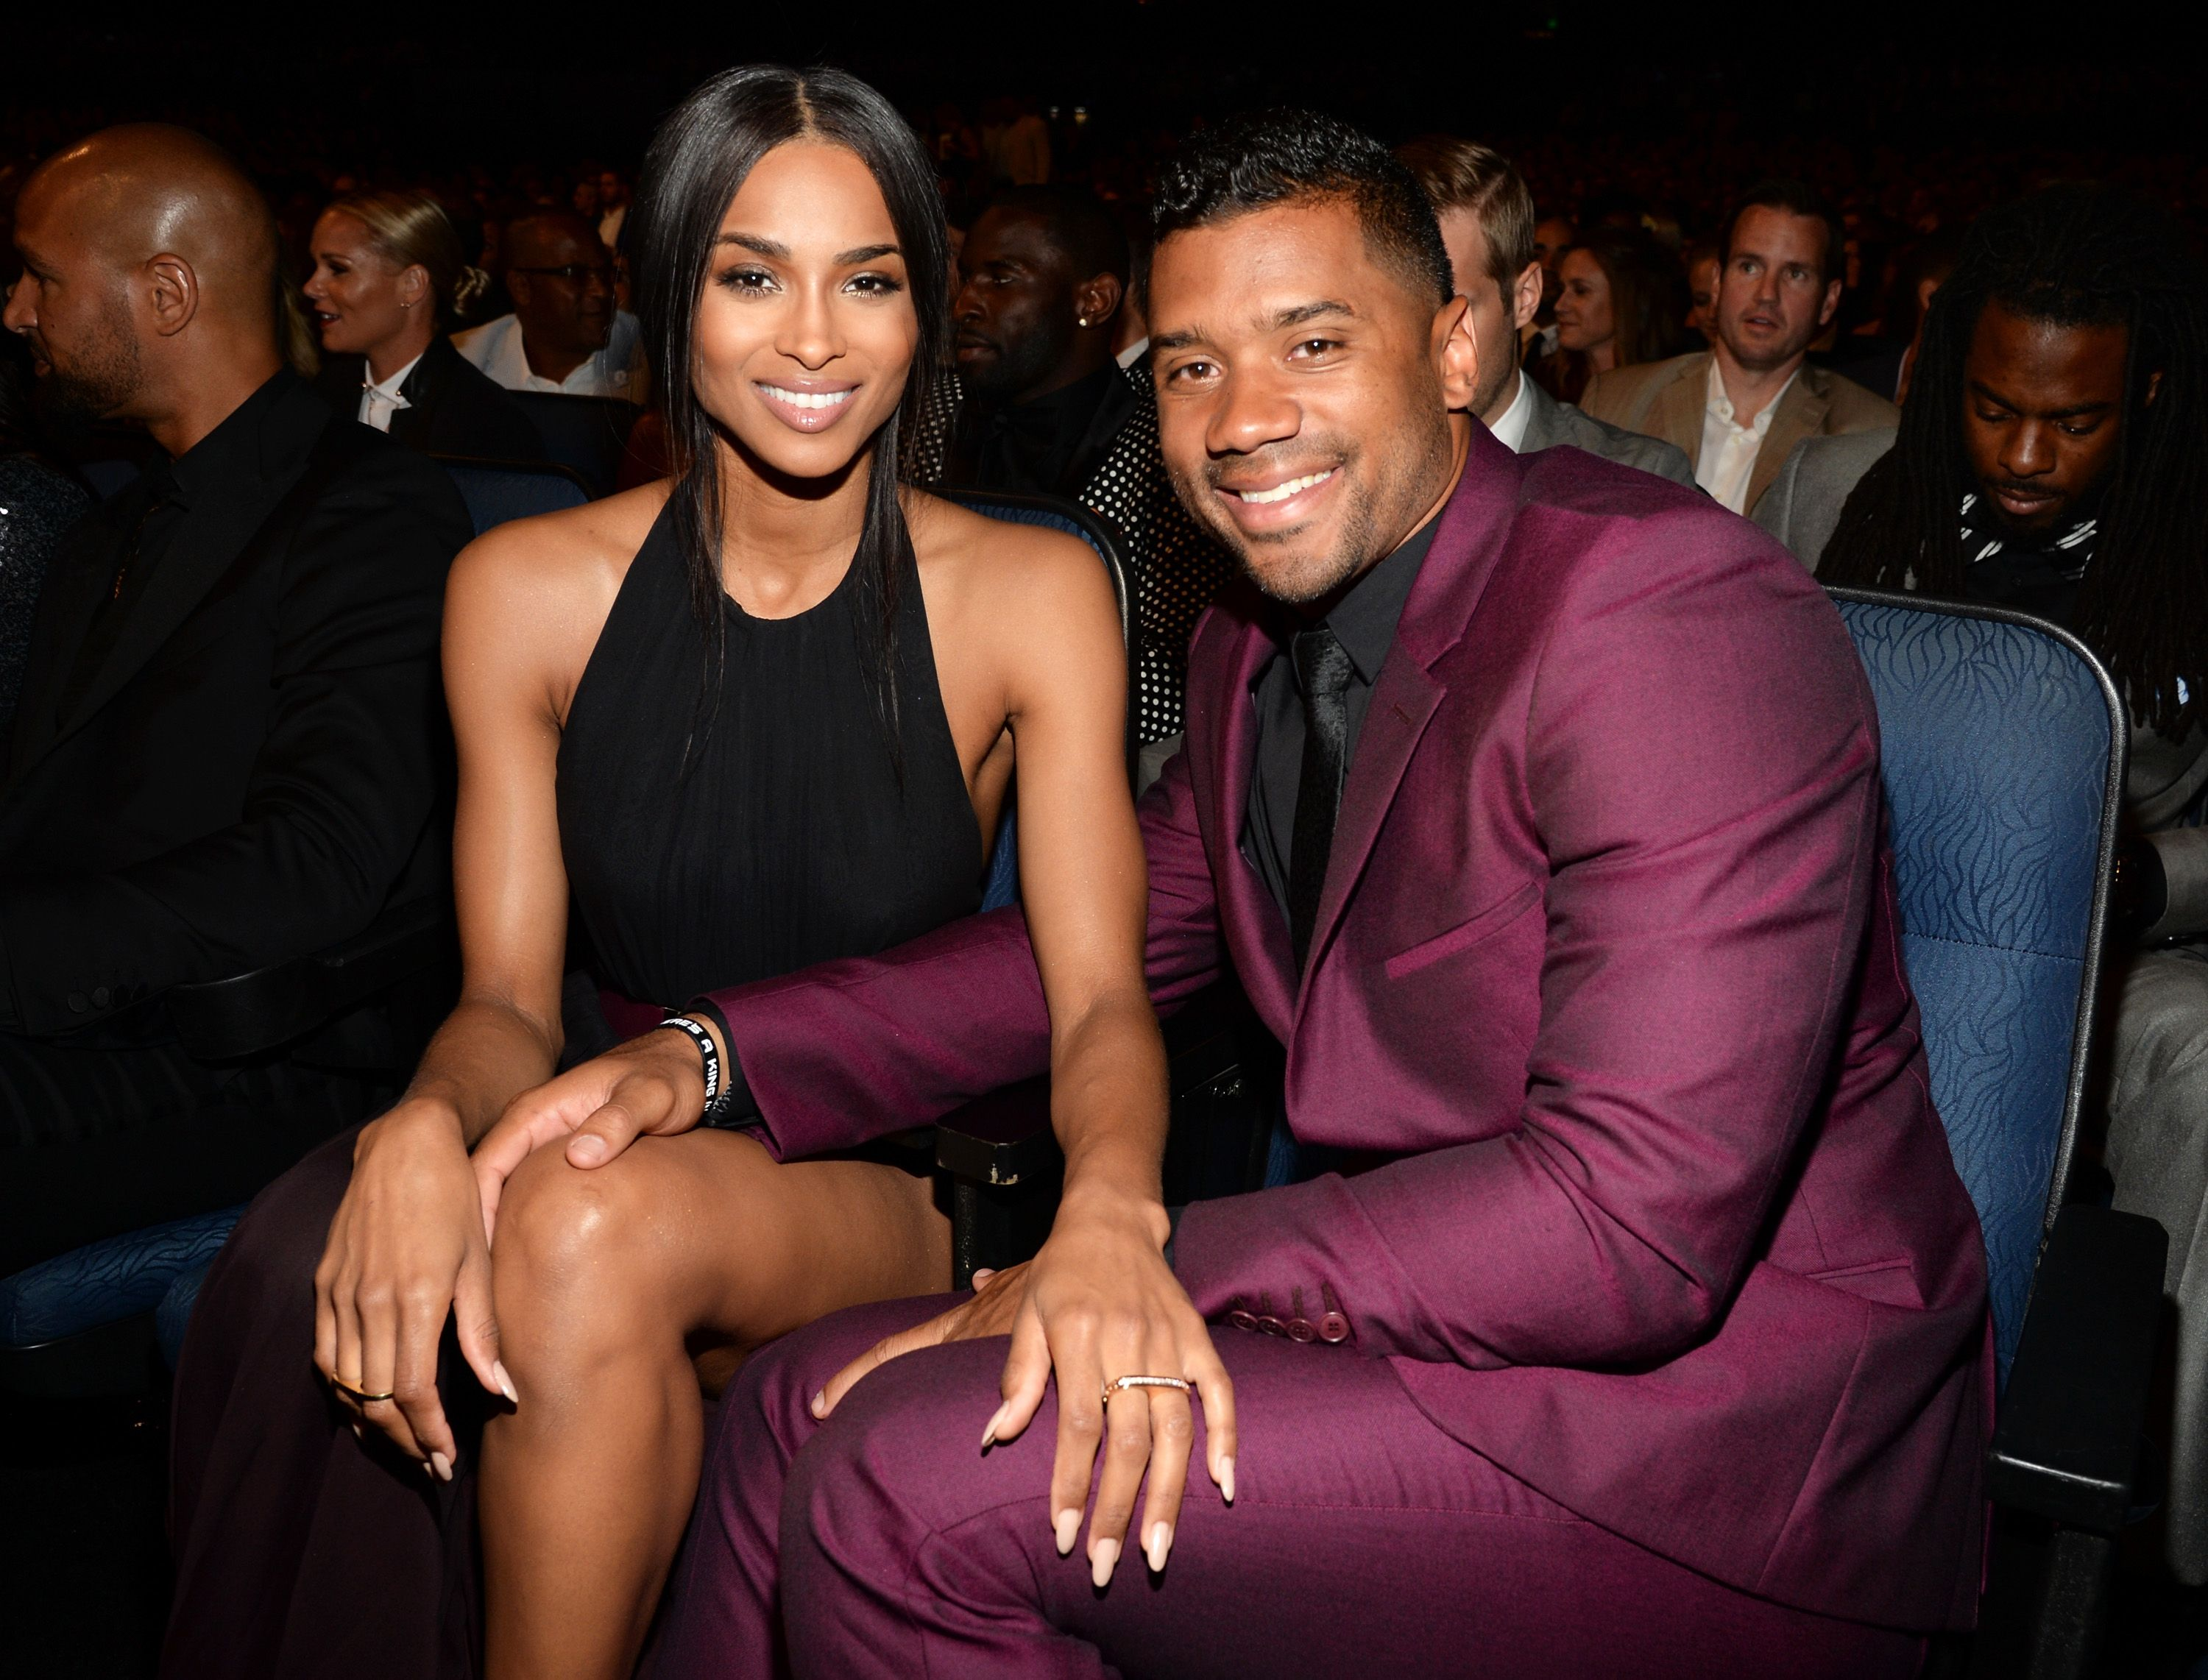 Quarterback Russell Wilson and singer Ciara attend the 2015 ESPYS at Microsoft Theater in LA, California on July 15, 2015. | Photo: Getty Images